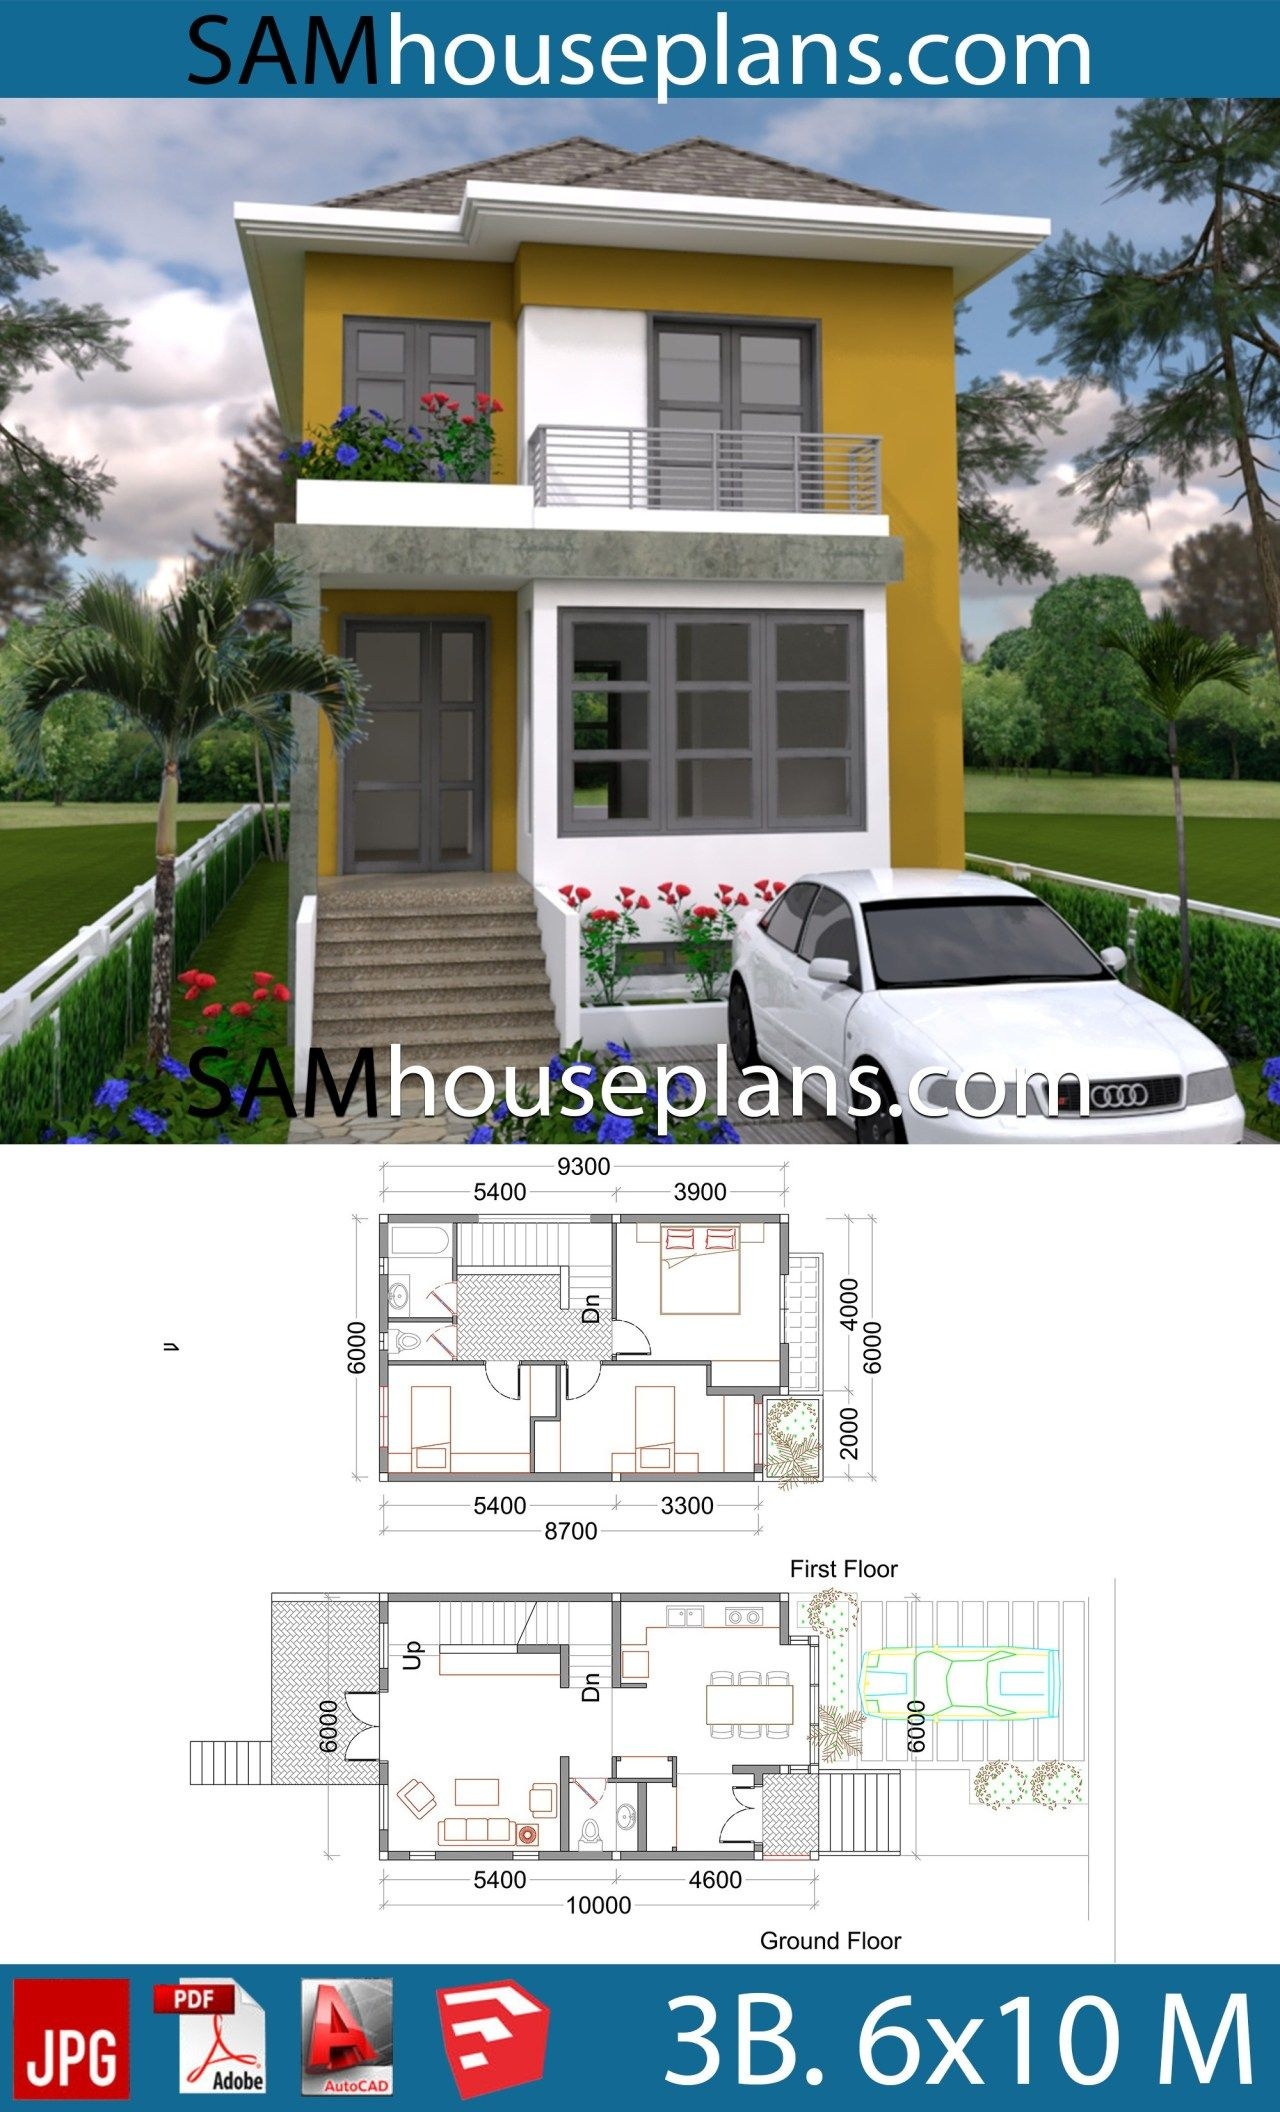 House Plans 6x10 With 3 Bedrooms Sam House Plans House Plans 2bhk House Plan Bungalow Floor Plans